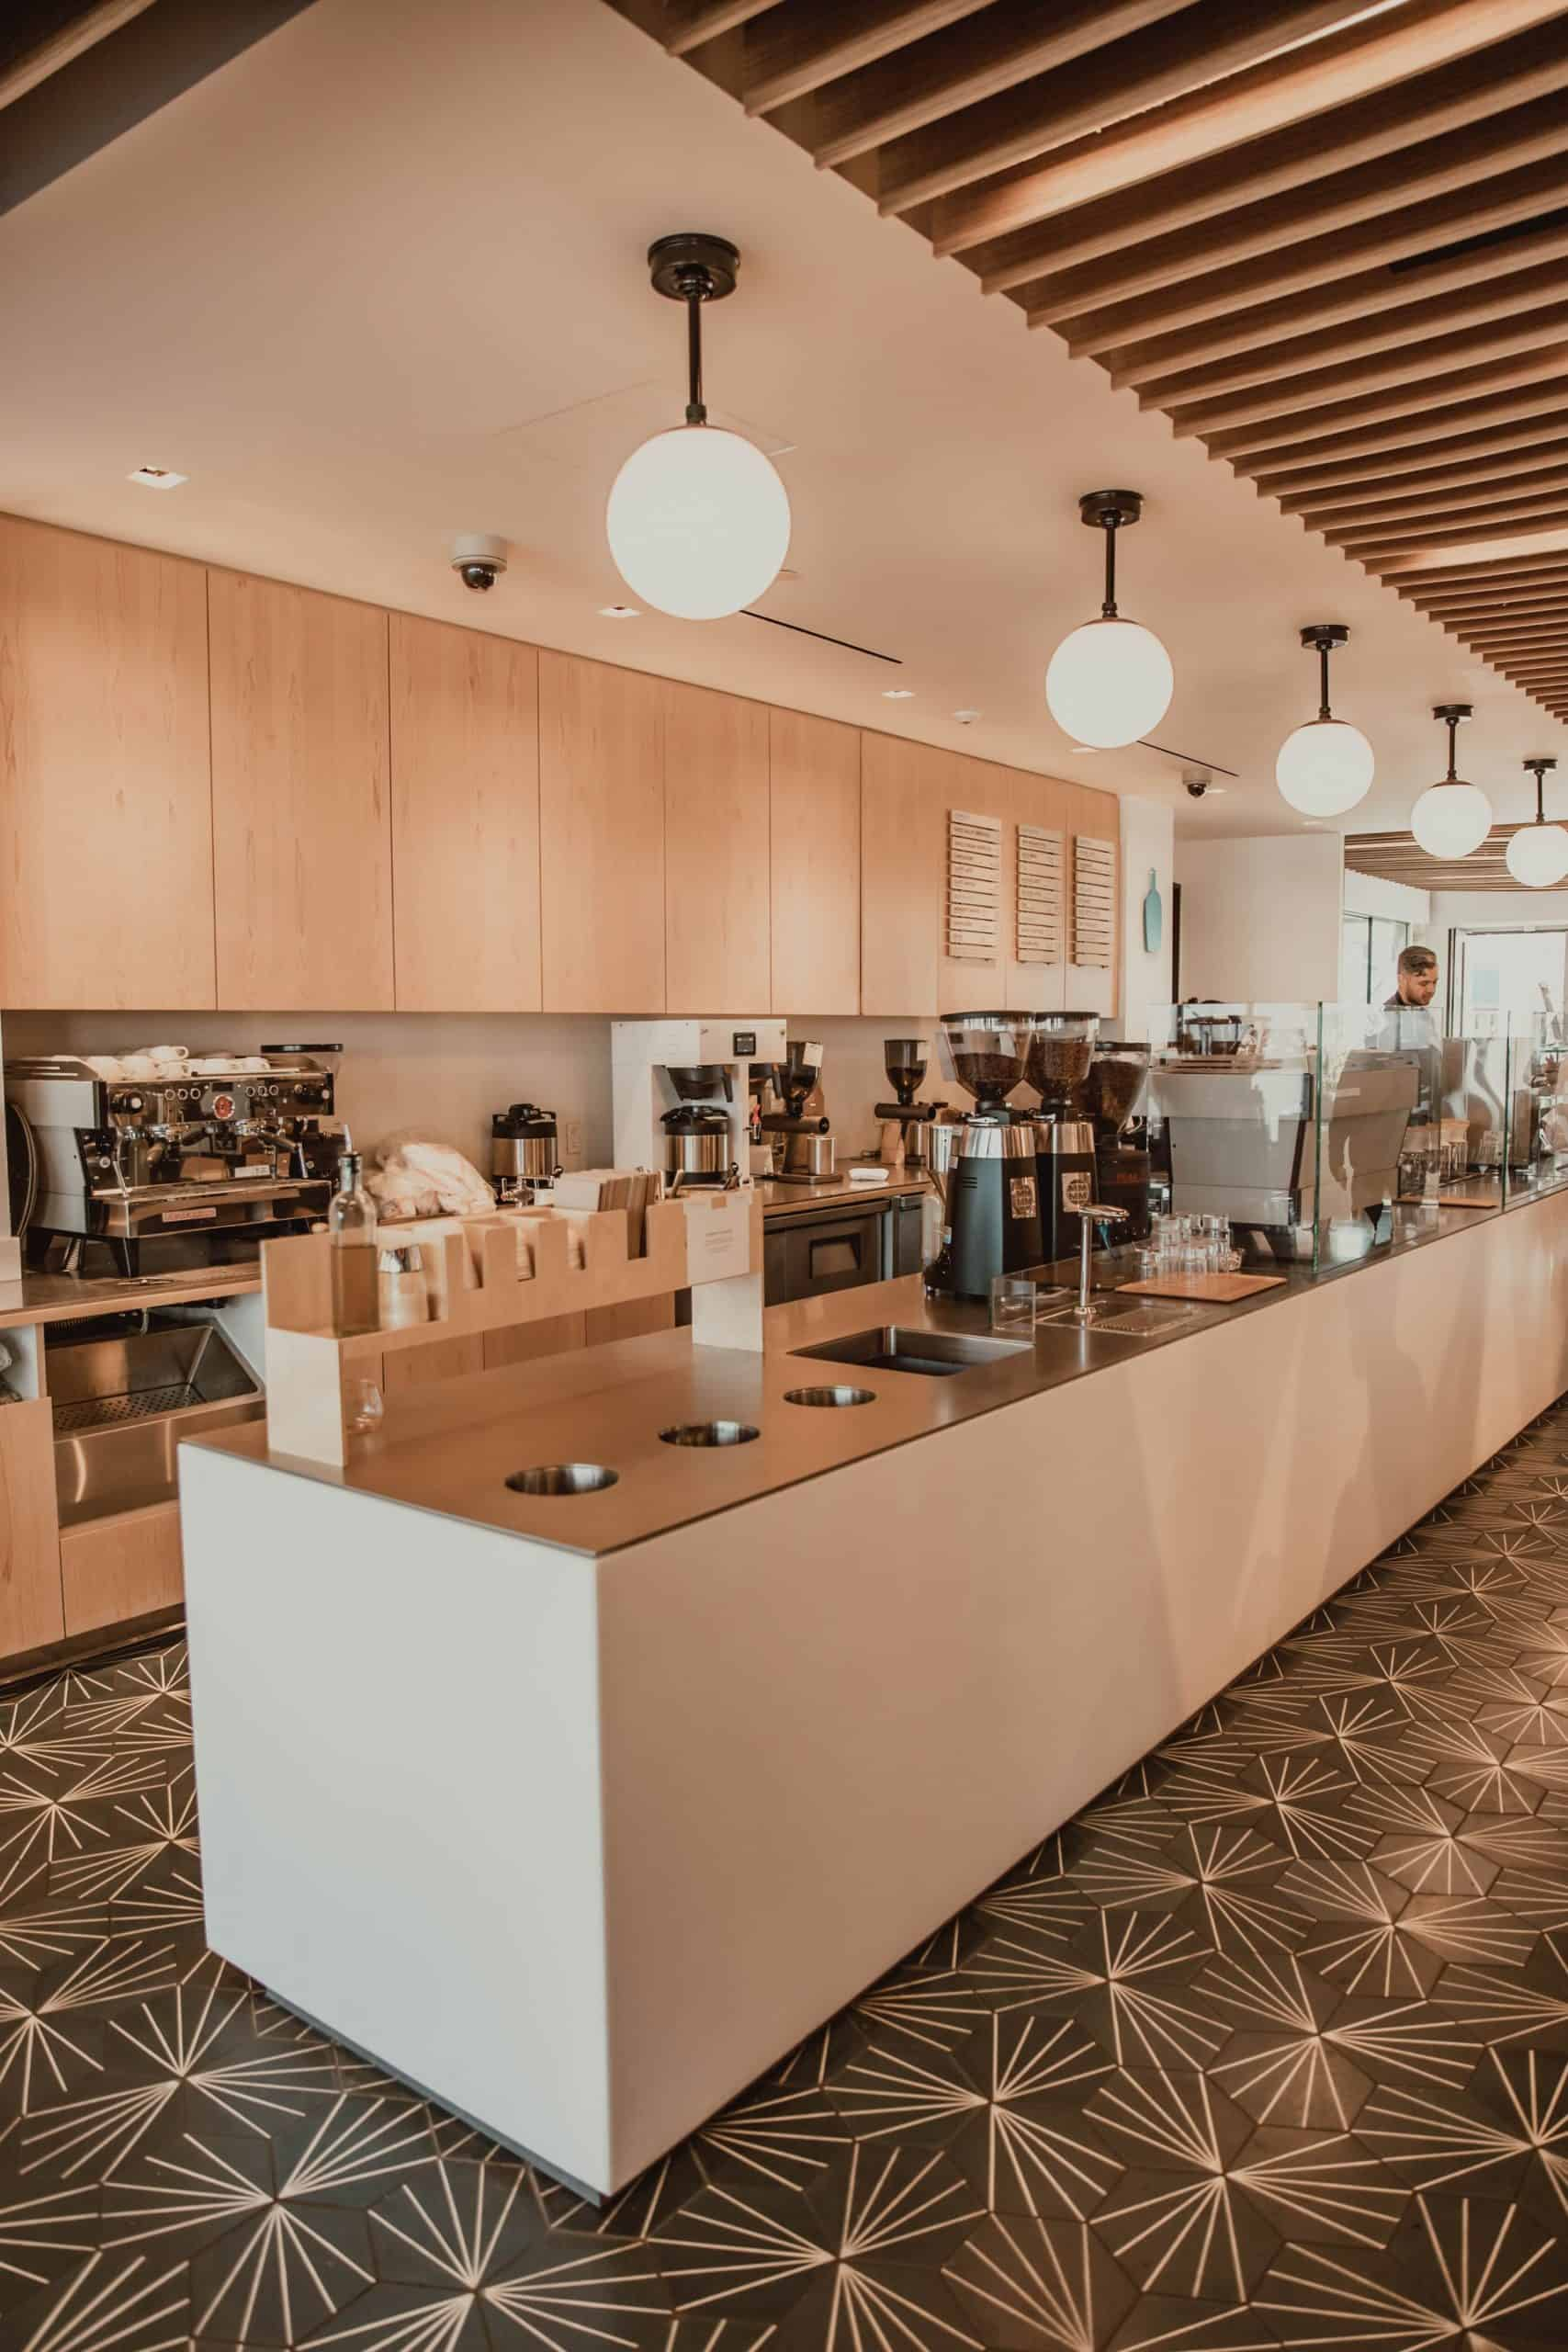 Wood And Drywall In Two Tiers kitchen ceiling ideas